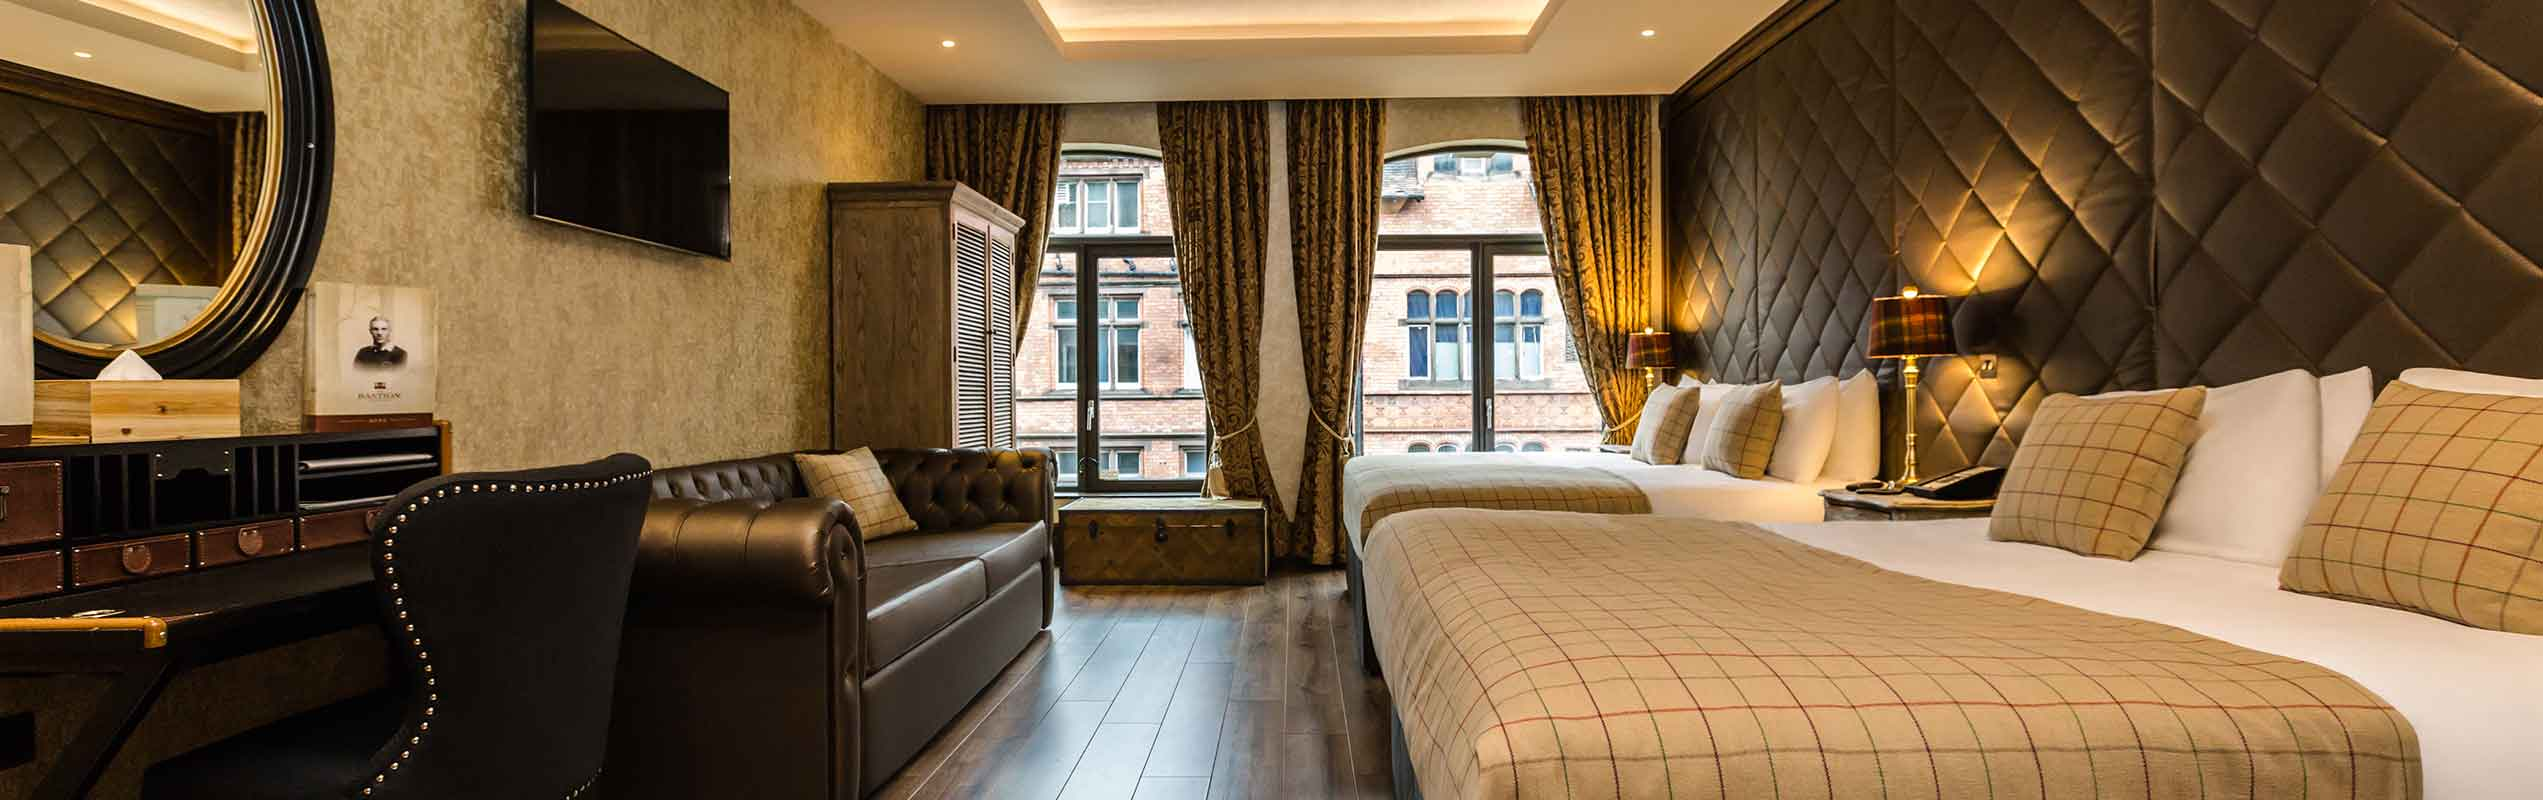 Terrific The Shankly Hotel Liverpool  Luxury Bill Shankly Themed Hotel With Interesting History With Astounding Garden Centre Willington Also Plastic Garden In Addition Ware Garden Centre And Nareys Garden Centre As Well As Garden Inn Bristol Additionally Gardening Oxford From Shanklyhotelcom With   Interesting The Shankly Hotel Liverpool  Luxury Bill Shankly Themed Hotel With Astounding History And Terrific Garden Centre Willington Also Plastic Garden In Addition Ware Garden Centre From Shanklyhotelcom